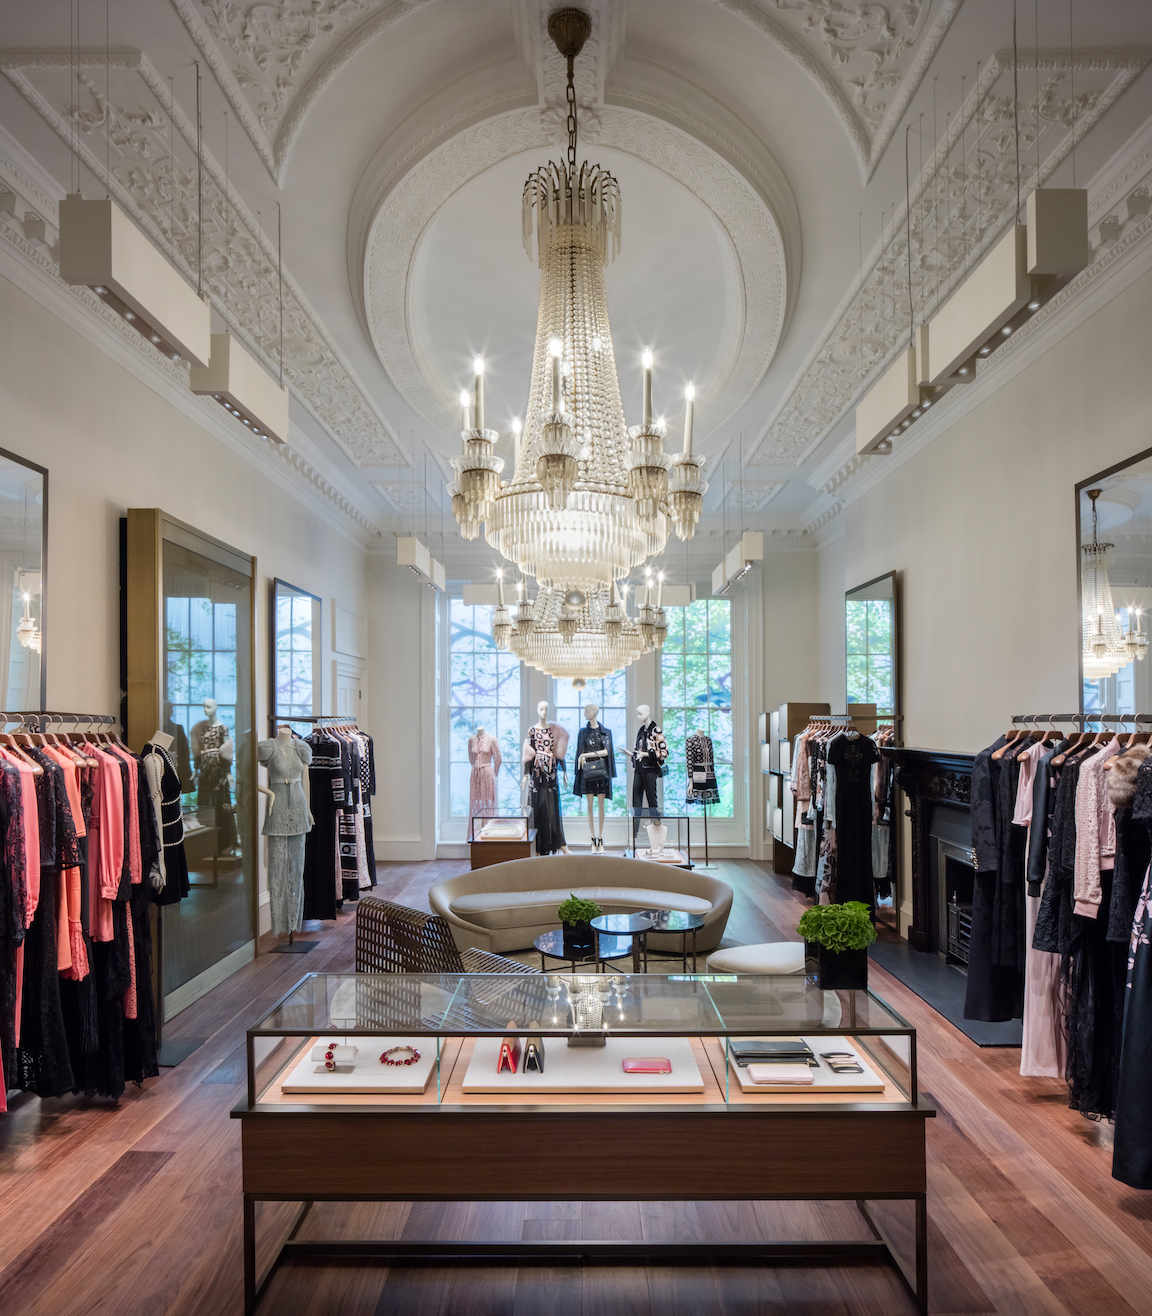 Haute house: Elie Saab opens its first London flagship